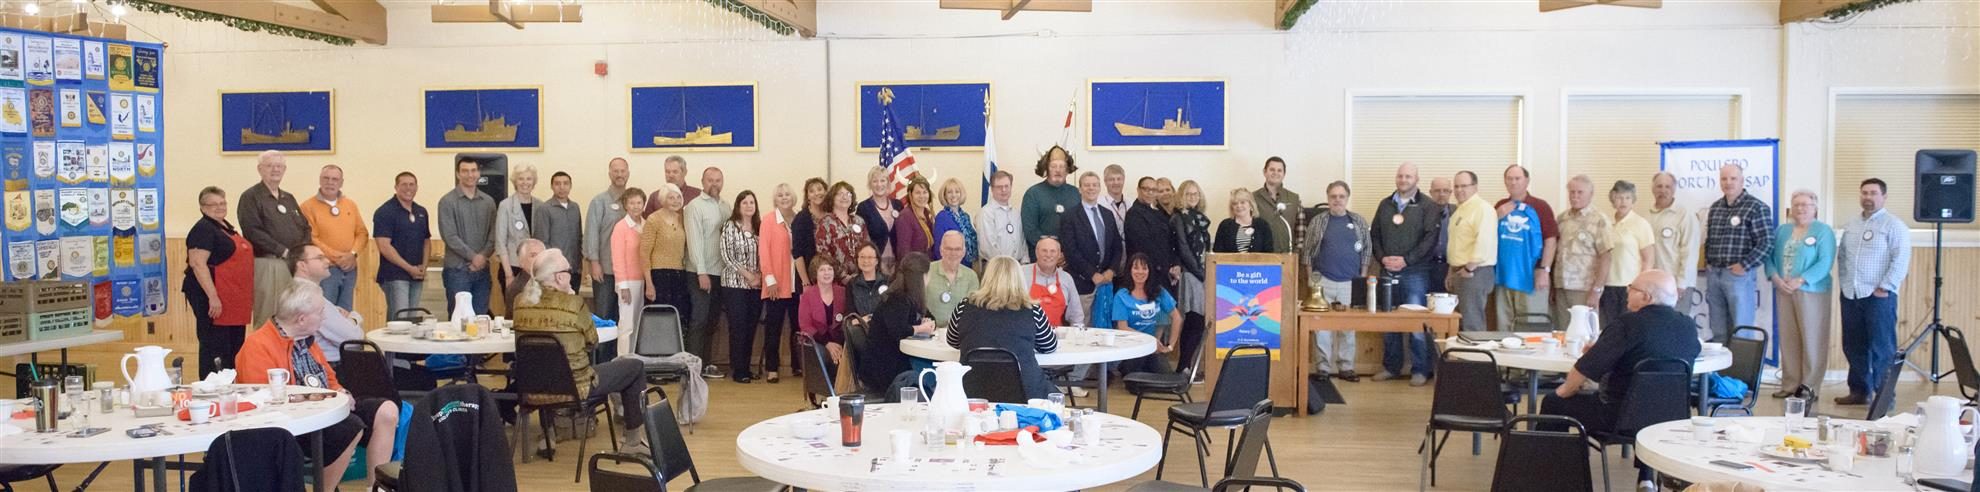 Group photo of Rotarians who volunteered to help with the Viking Tour fundraiser.